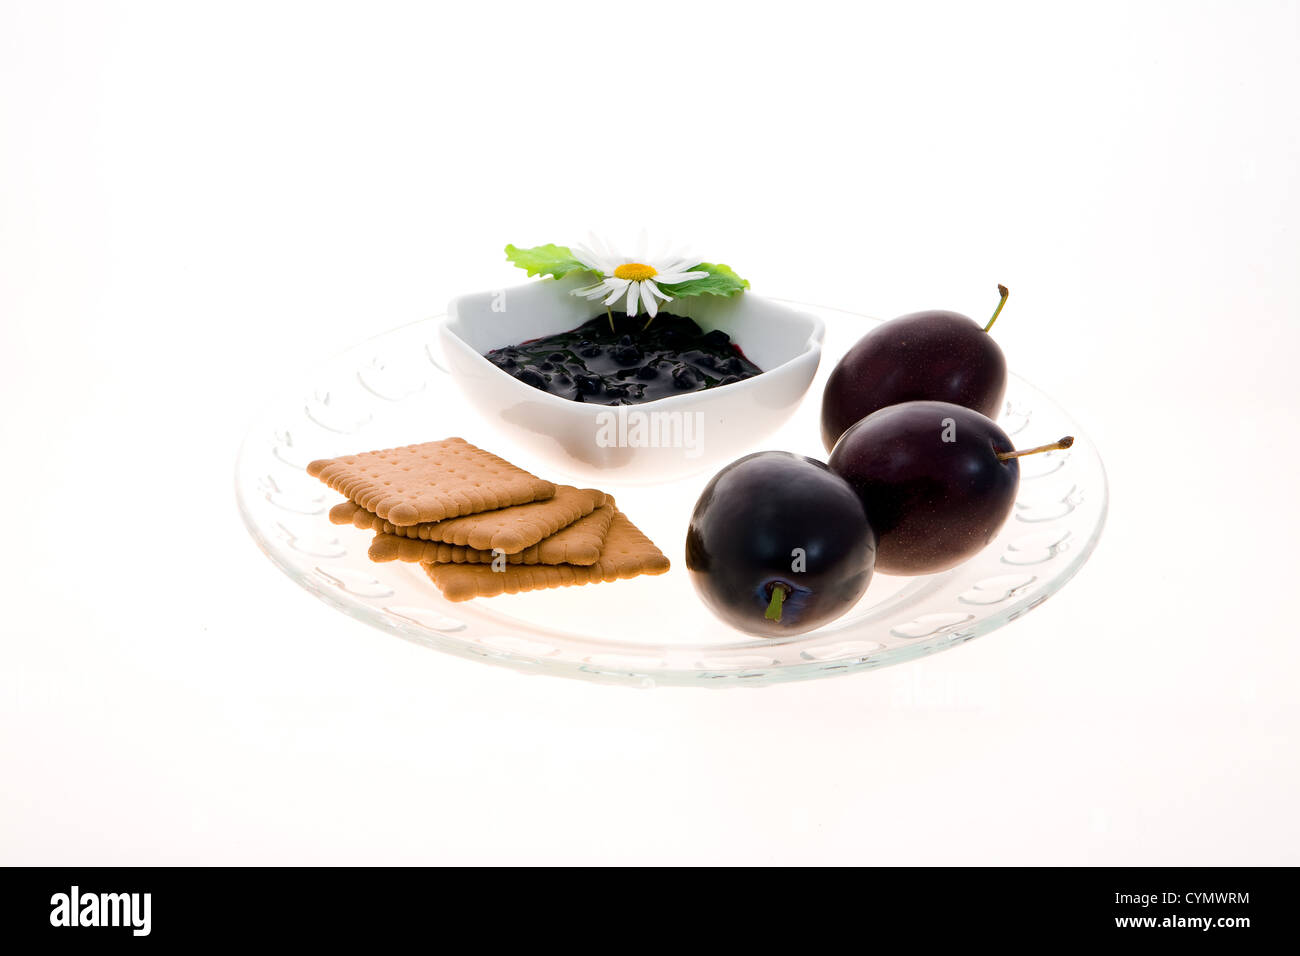 Composition of plums, plum confiture with white flower and biscuits - Stock Image